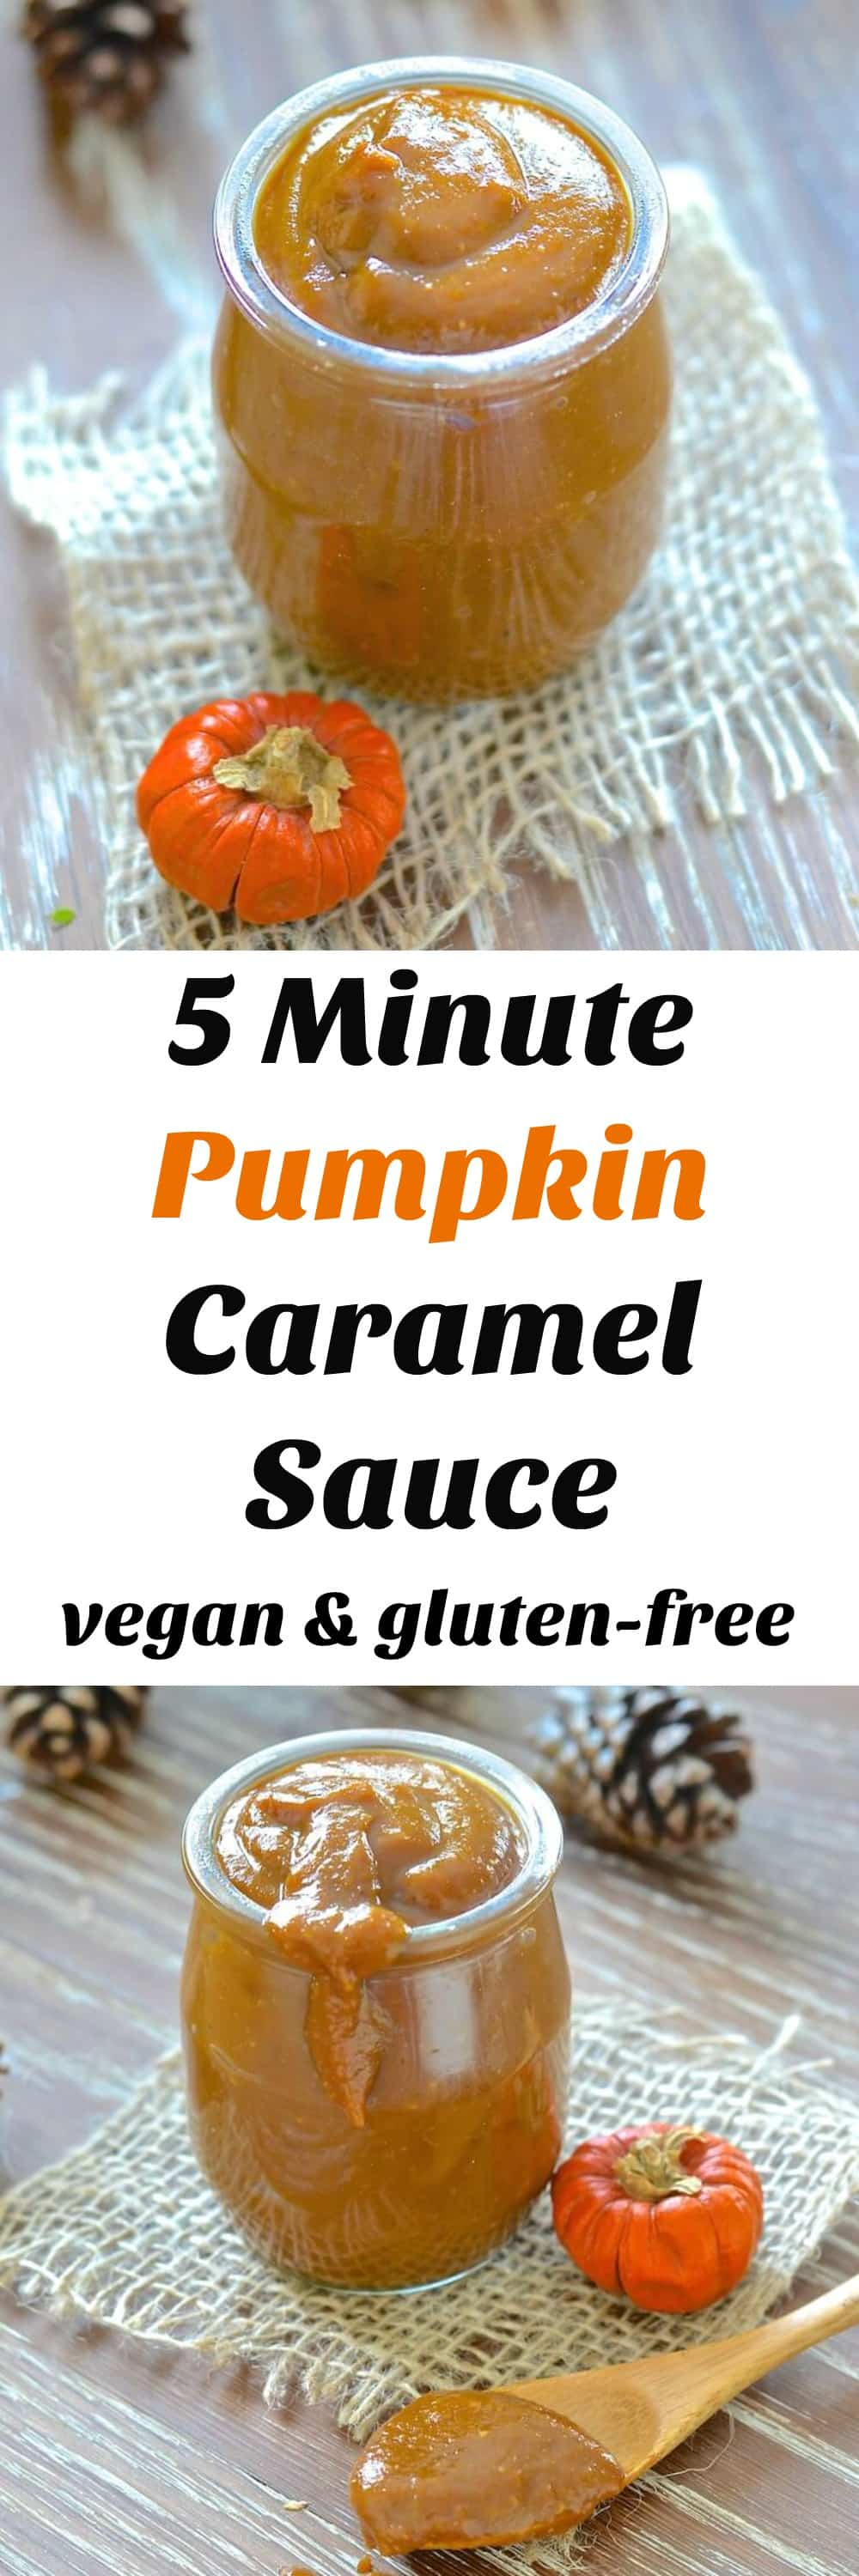 Silky, creamy & rich Vegan Pumpkin Caramel Sauce. Ready in only 5 minutes! Ridiculously easy & just full of sweet pumpkin deliciousness!